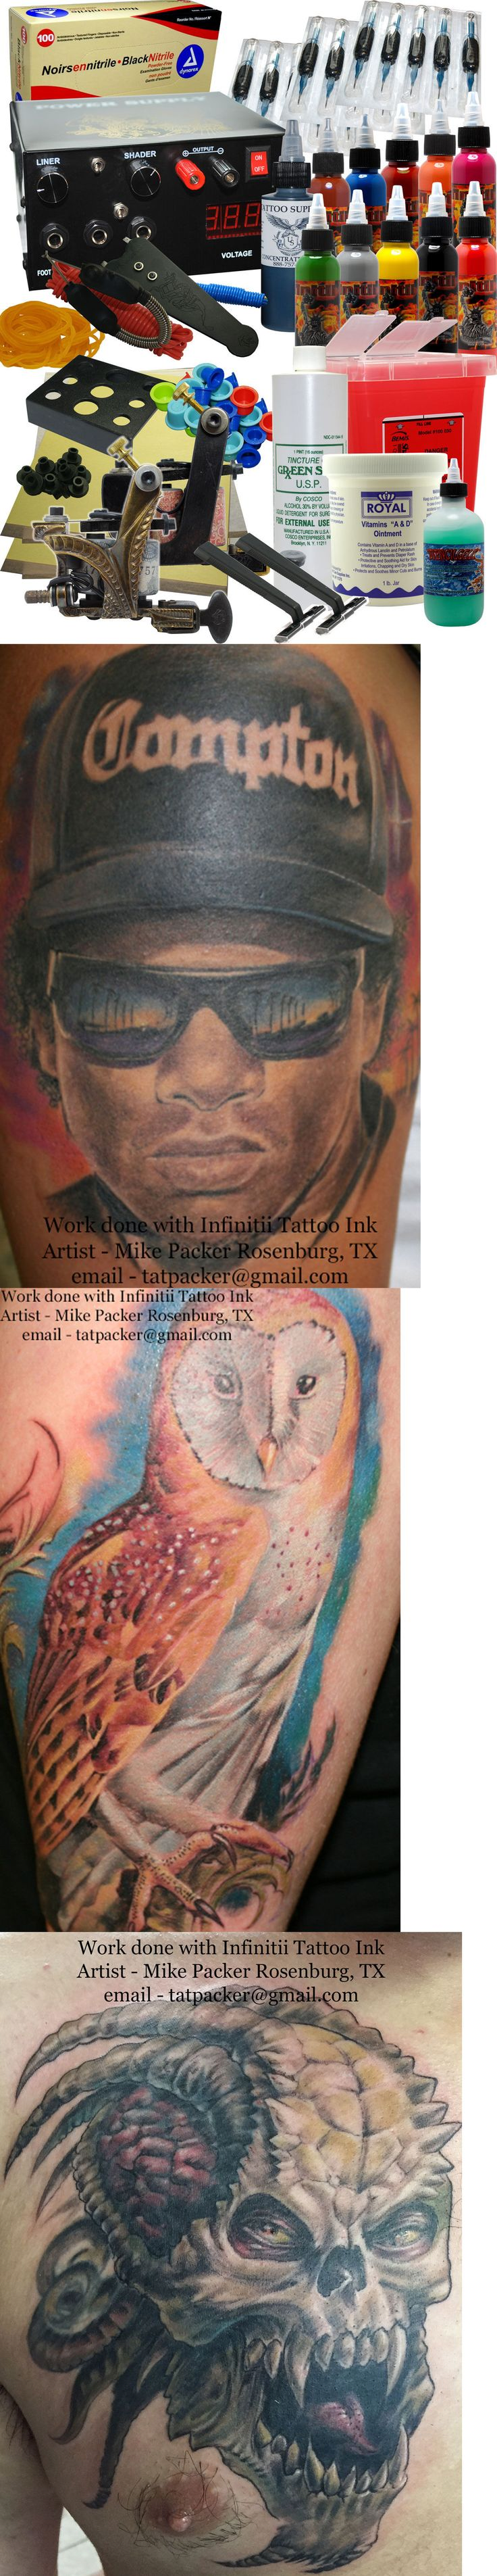 Tattoo Complete Kits: Professional Tattoo Kit -> BUY IT NOW ONLY: $300 on eBay!